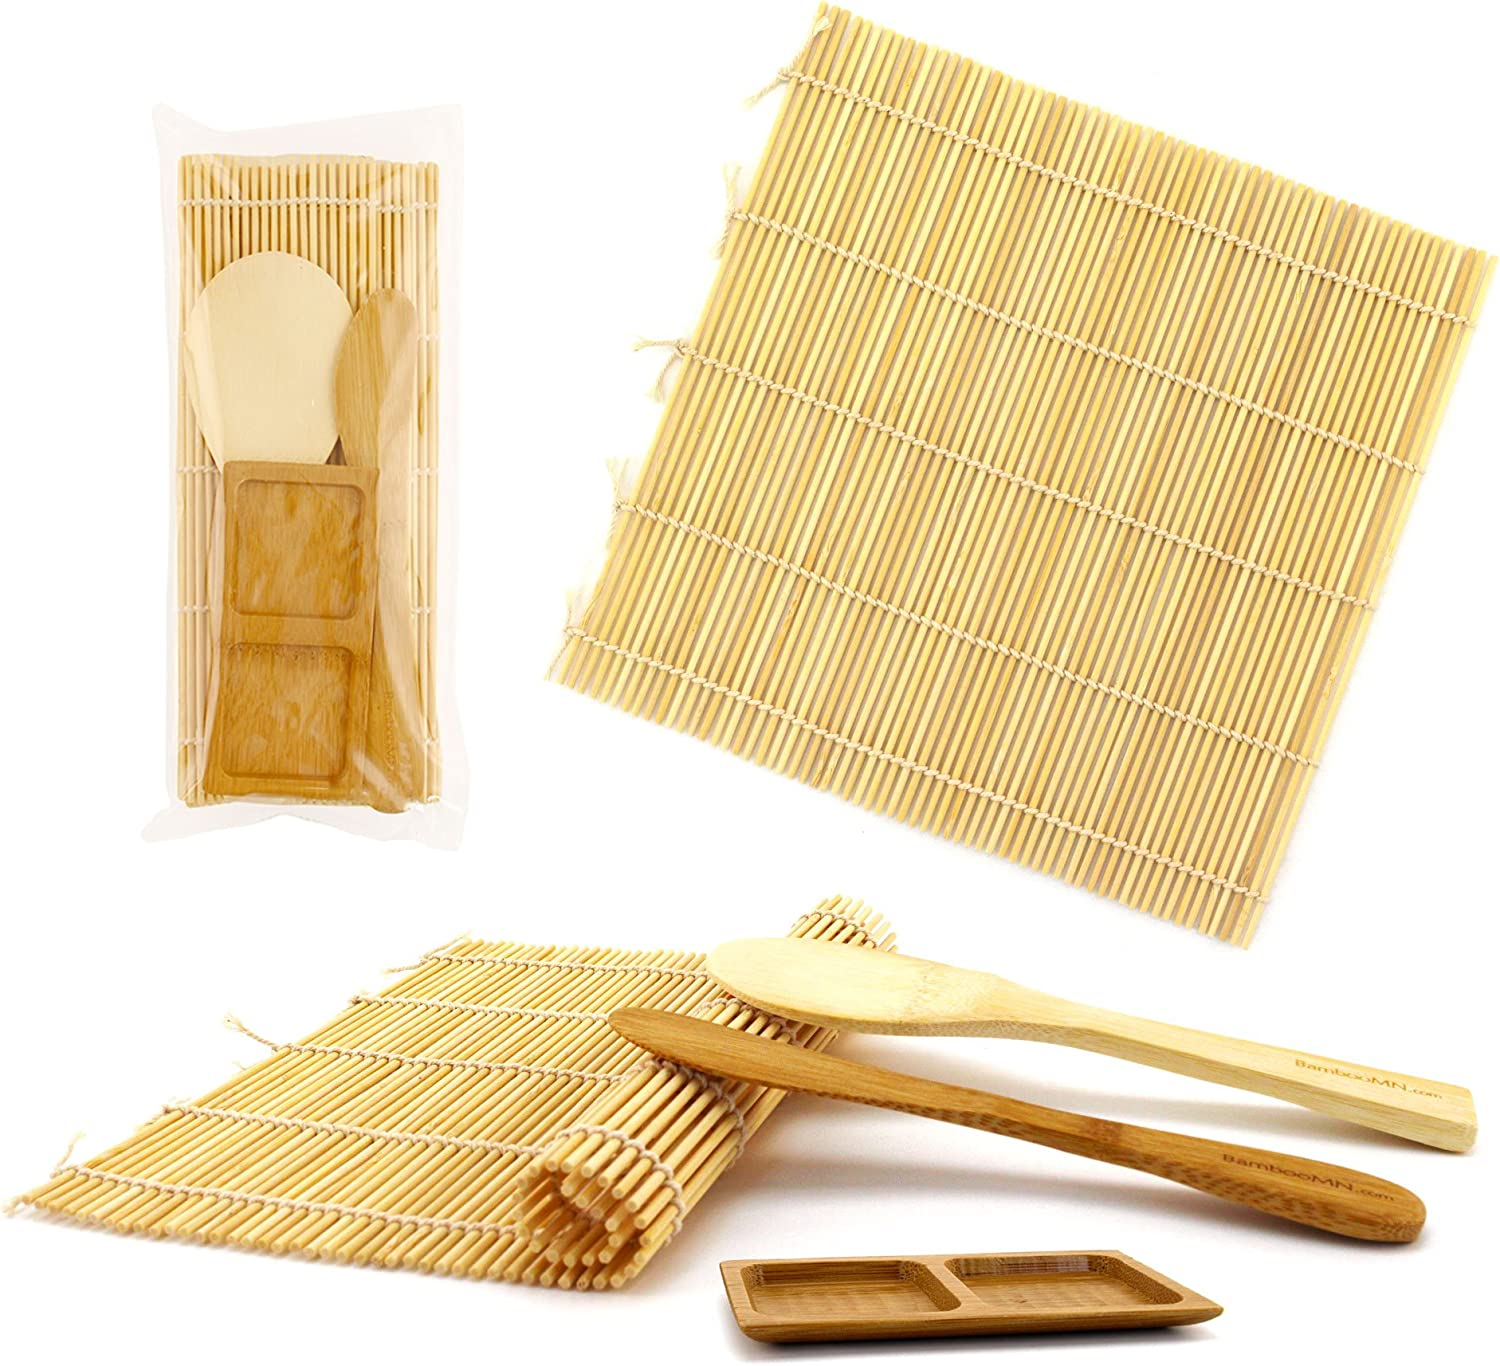 BambooMN Deluxe Sushi Making Kit 2x Natural Rolling Mats, 1x Rice Paddle, 1x Spreader, 1x Sauce Dish | 100% Bamboo Mats and Utensils